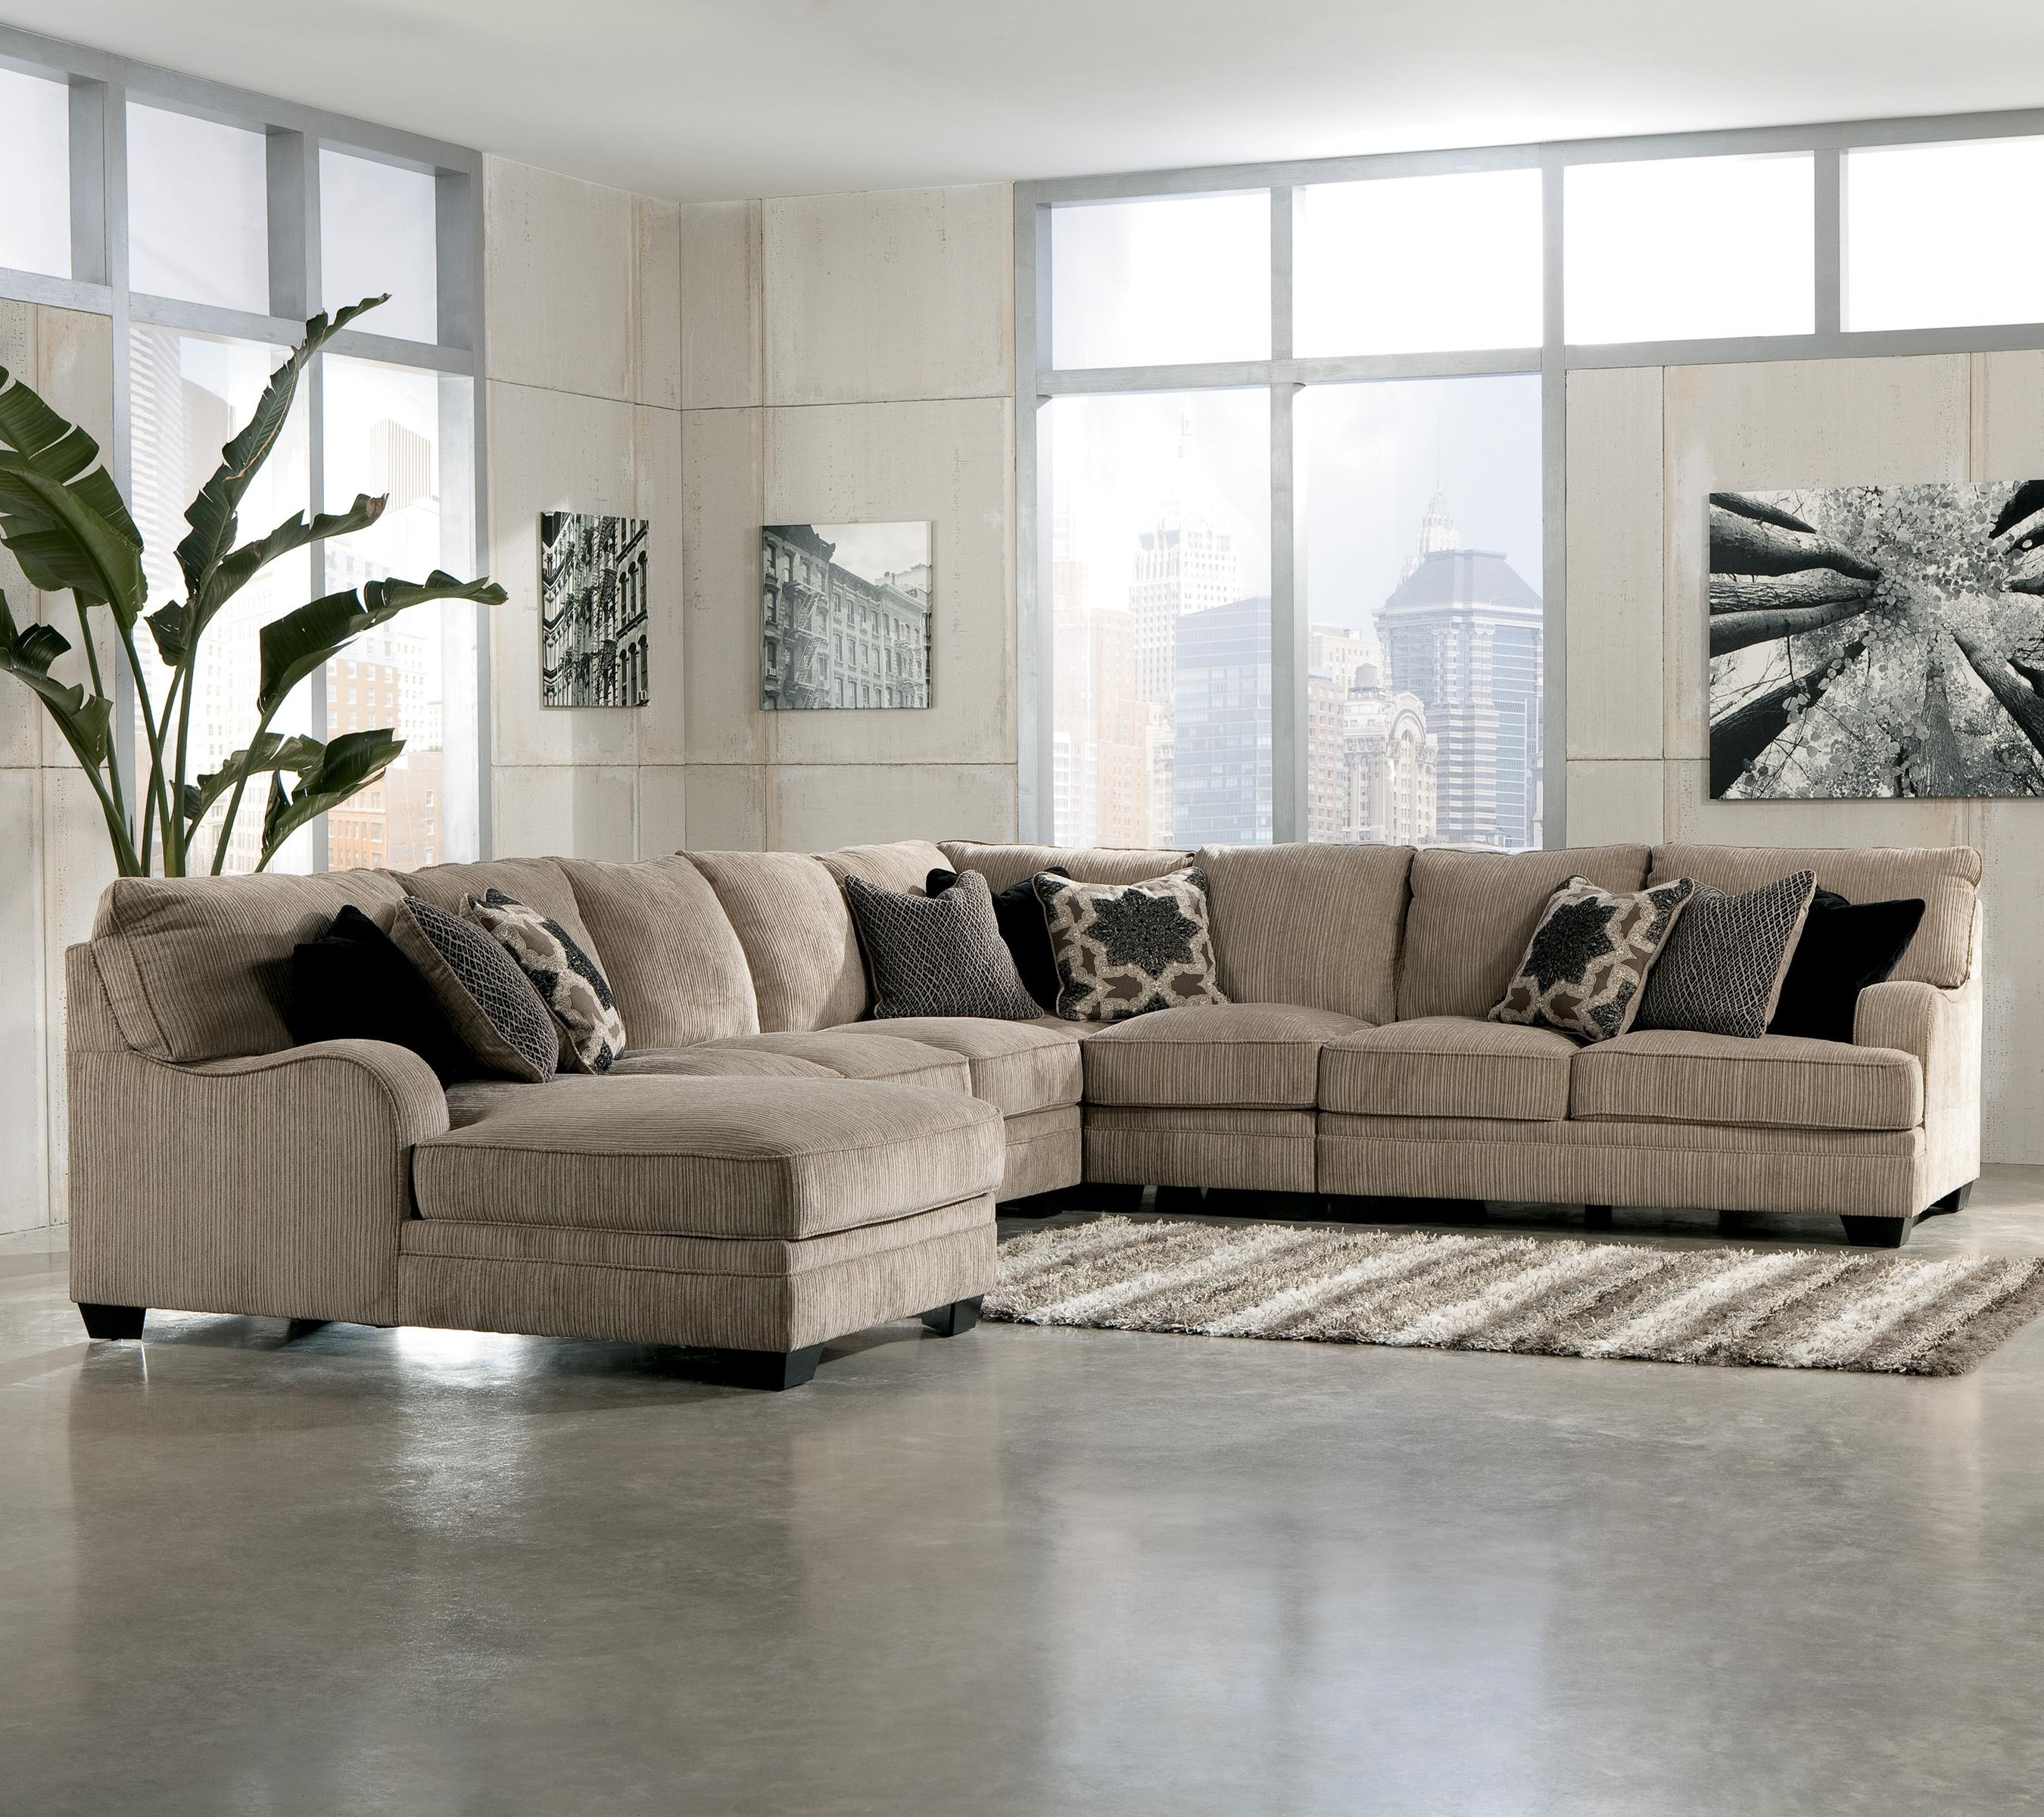 Featured Image of Pensacola Fl Sectional Sofas